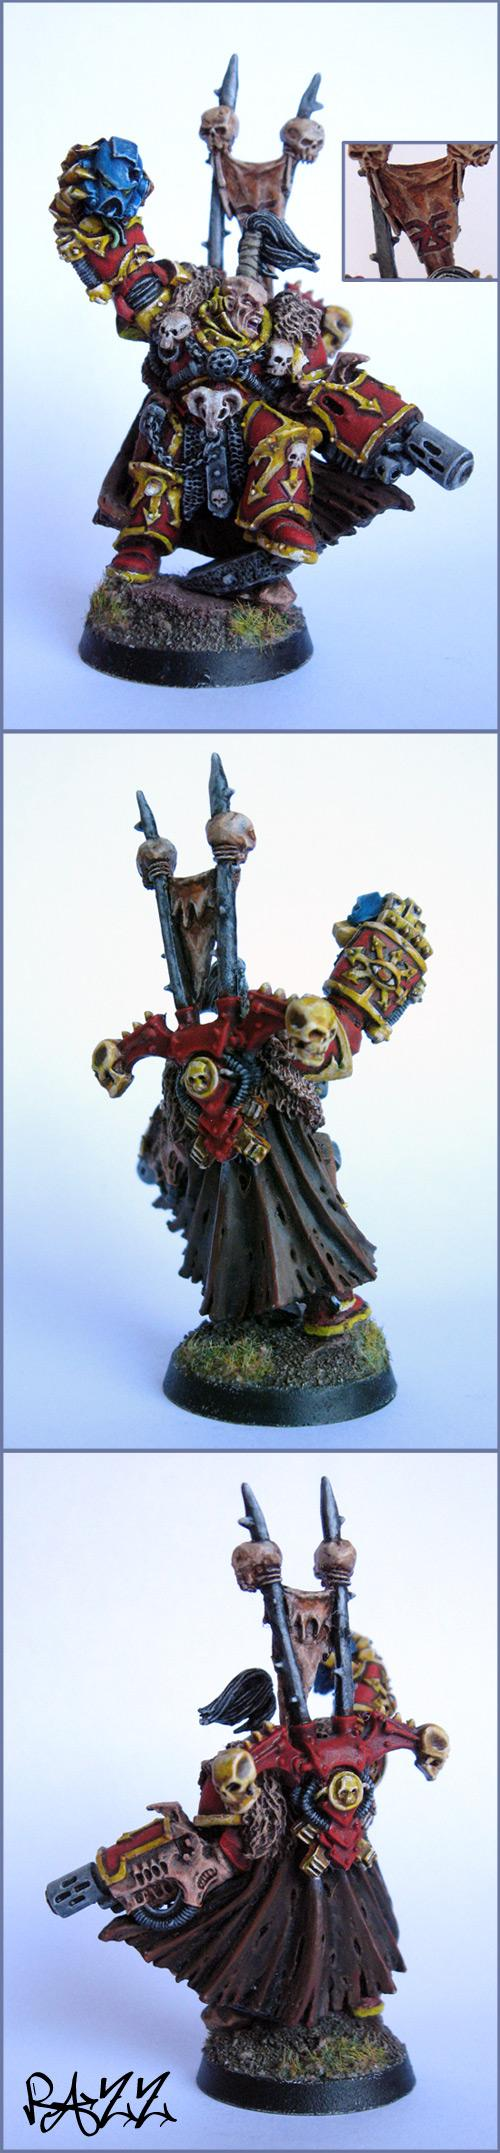 Chaos Lord, Chaos Space Marines, Headquarters, Warhammer 40,000